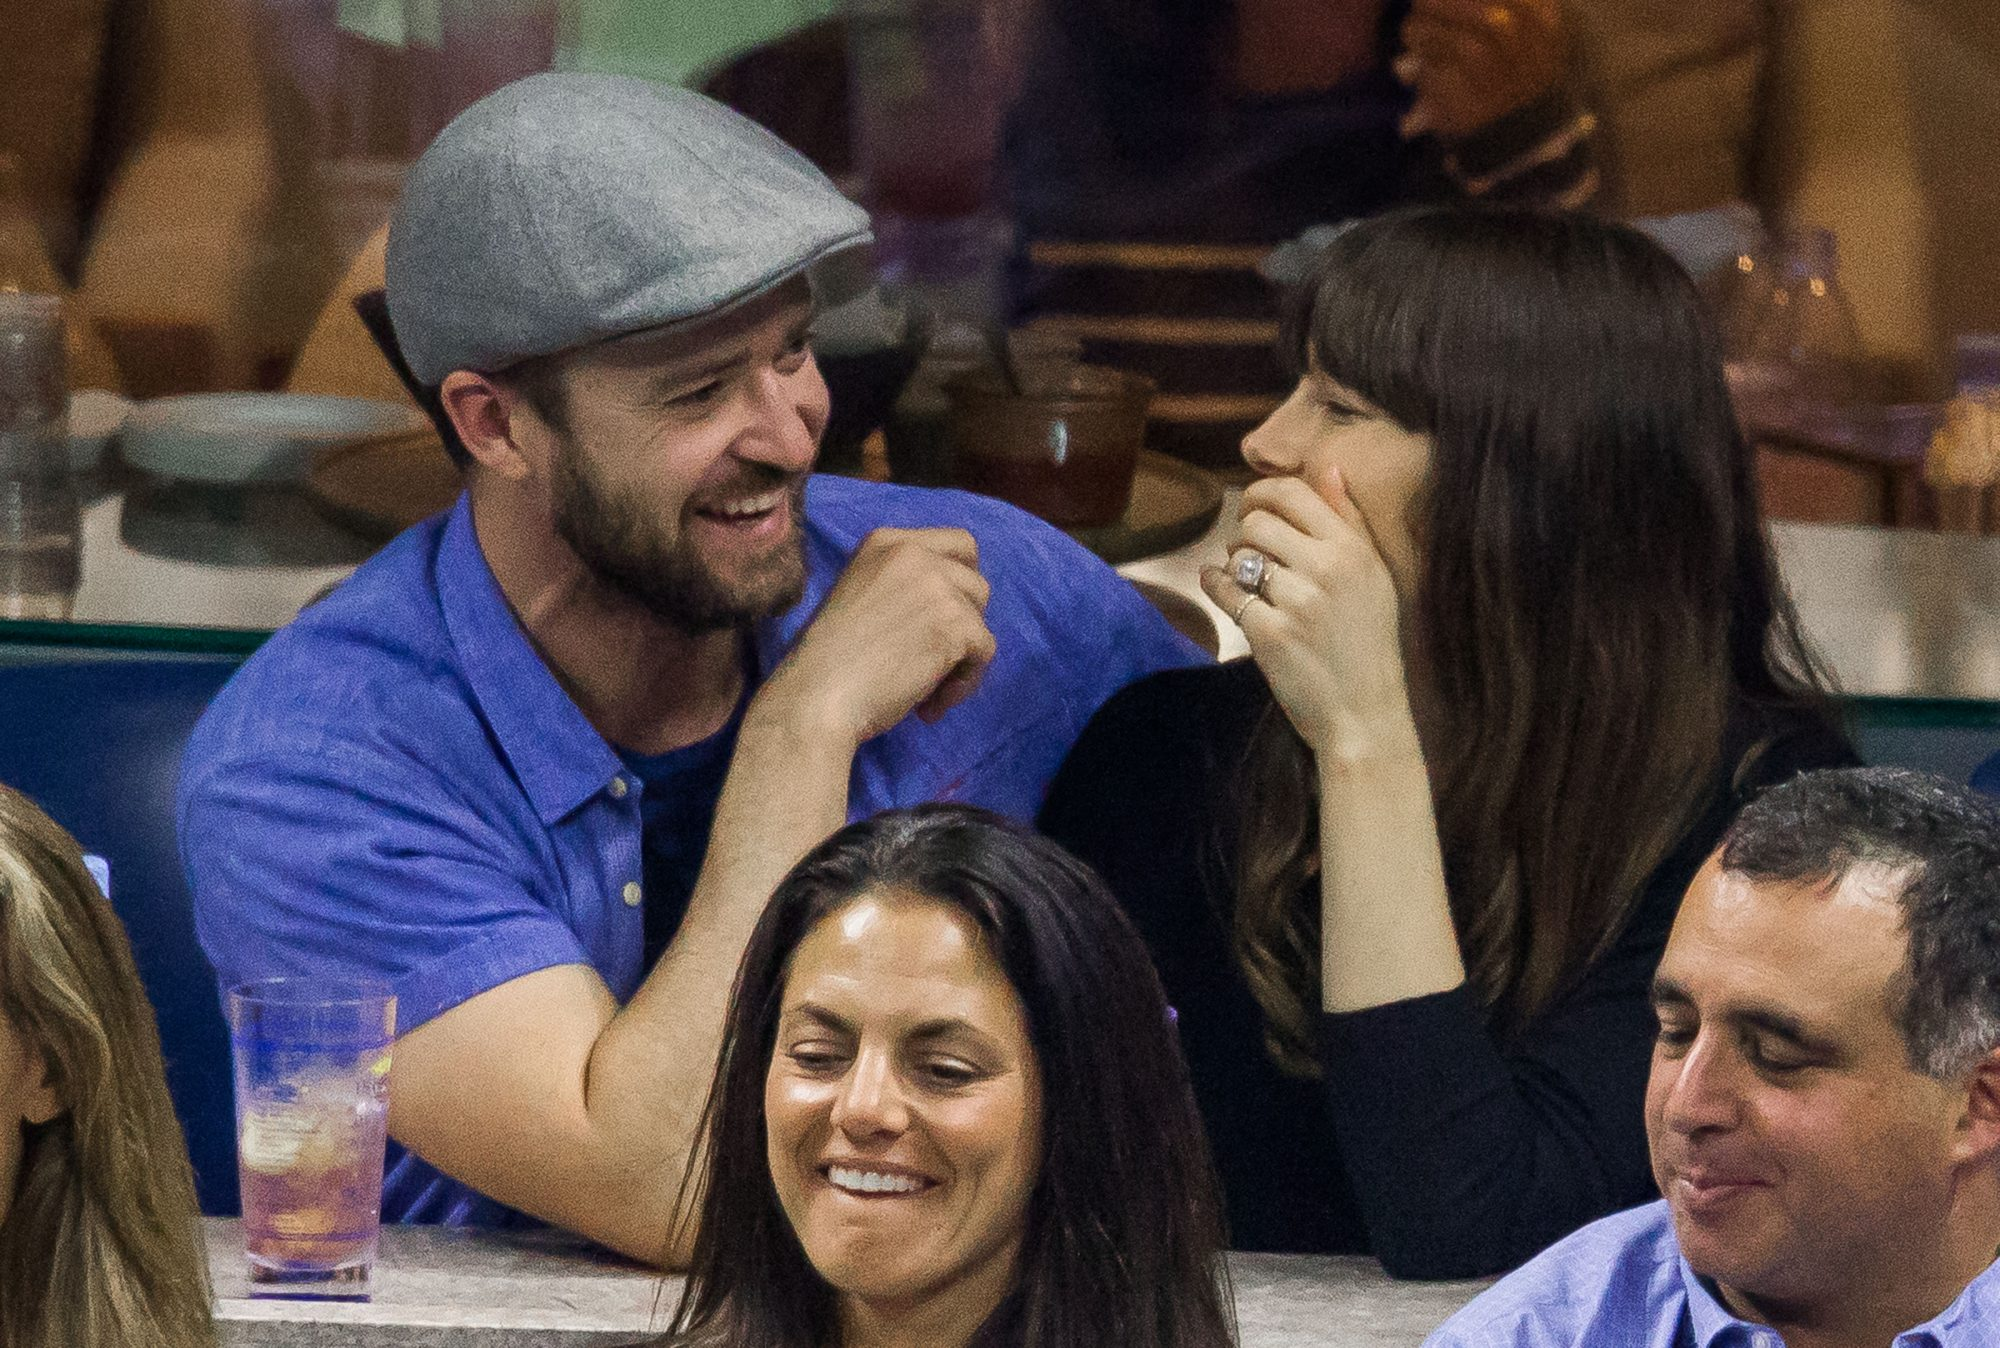 Justin-and-Jessica-laughing.jpg